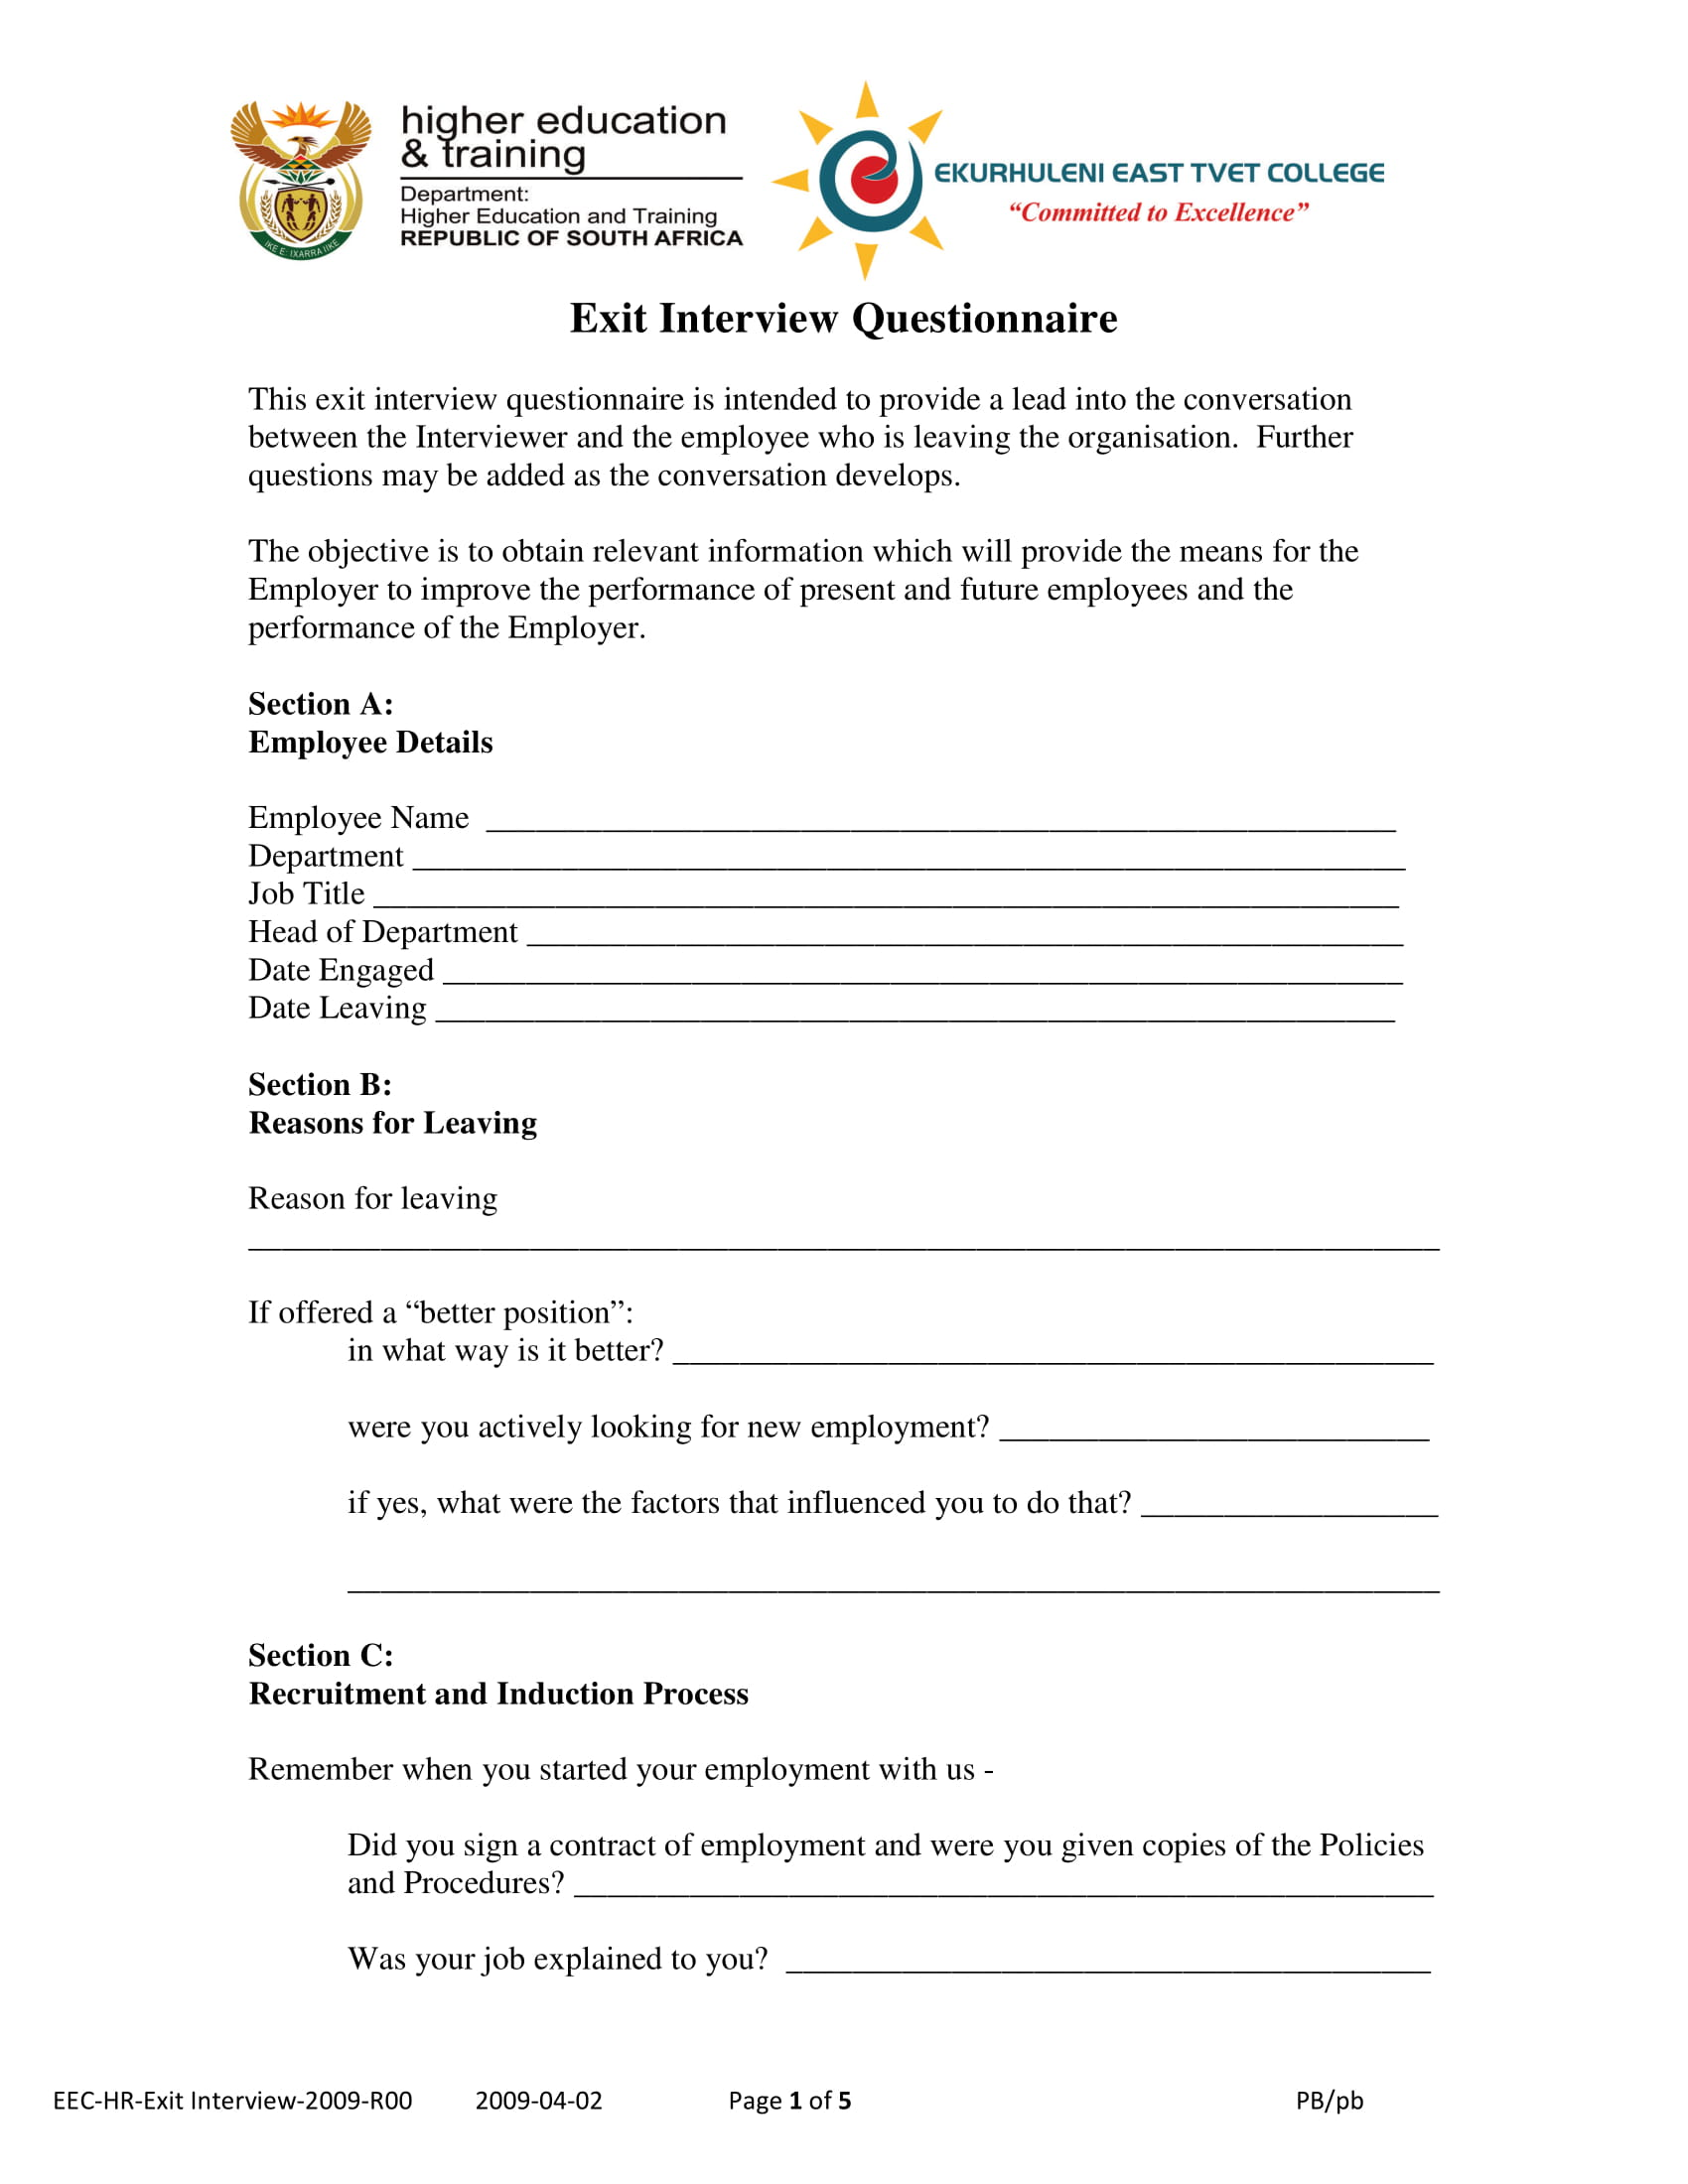 exit interview questionnaire form example